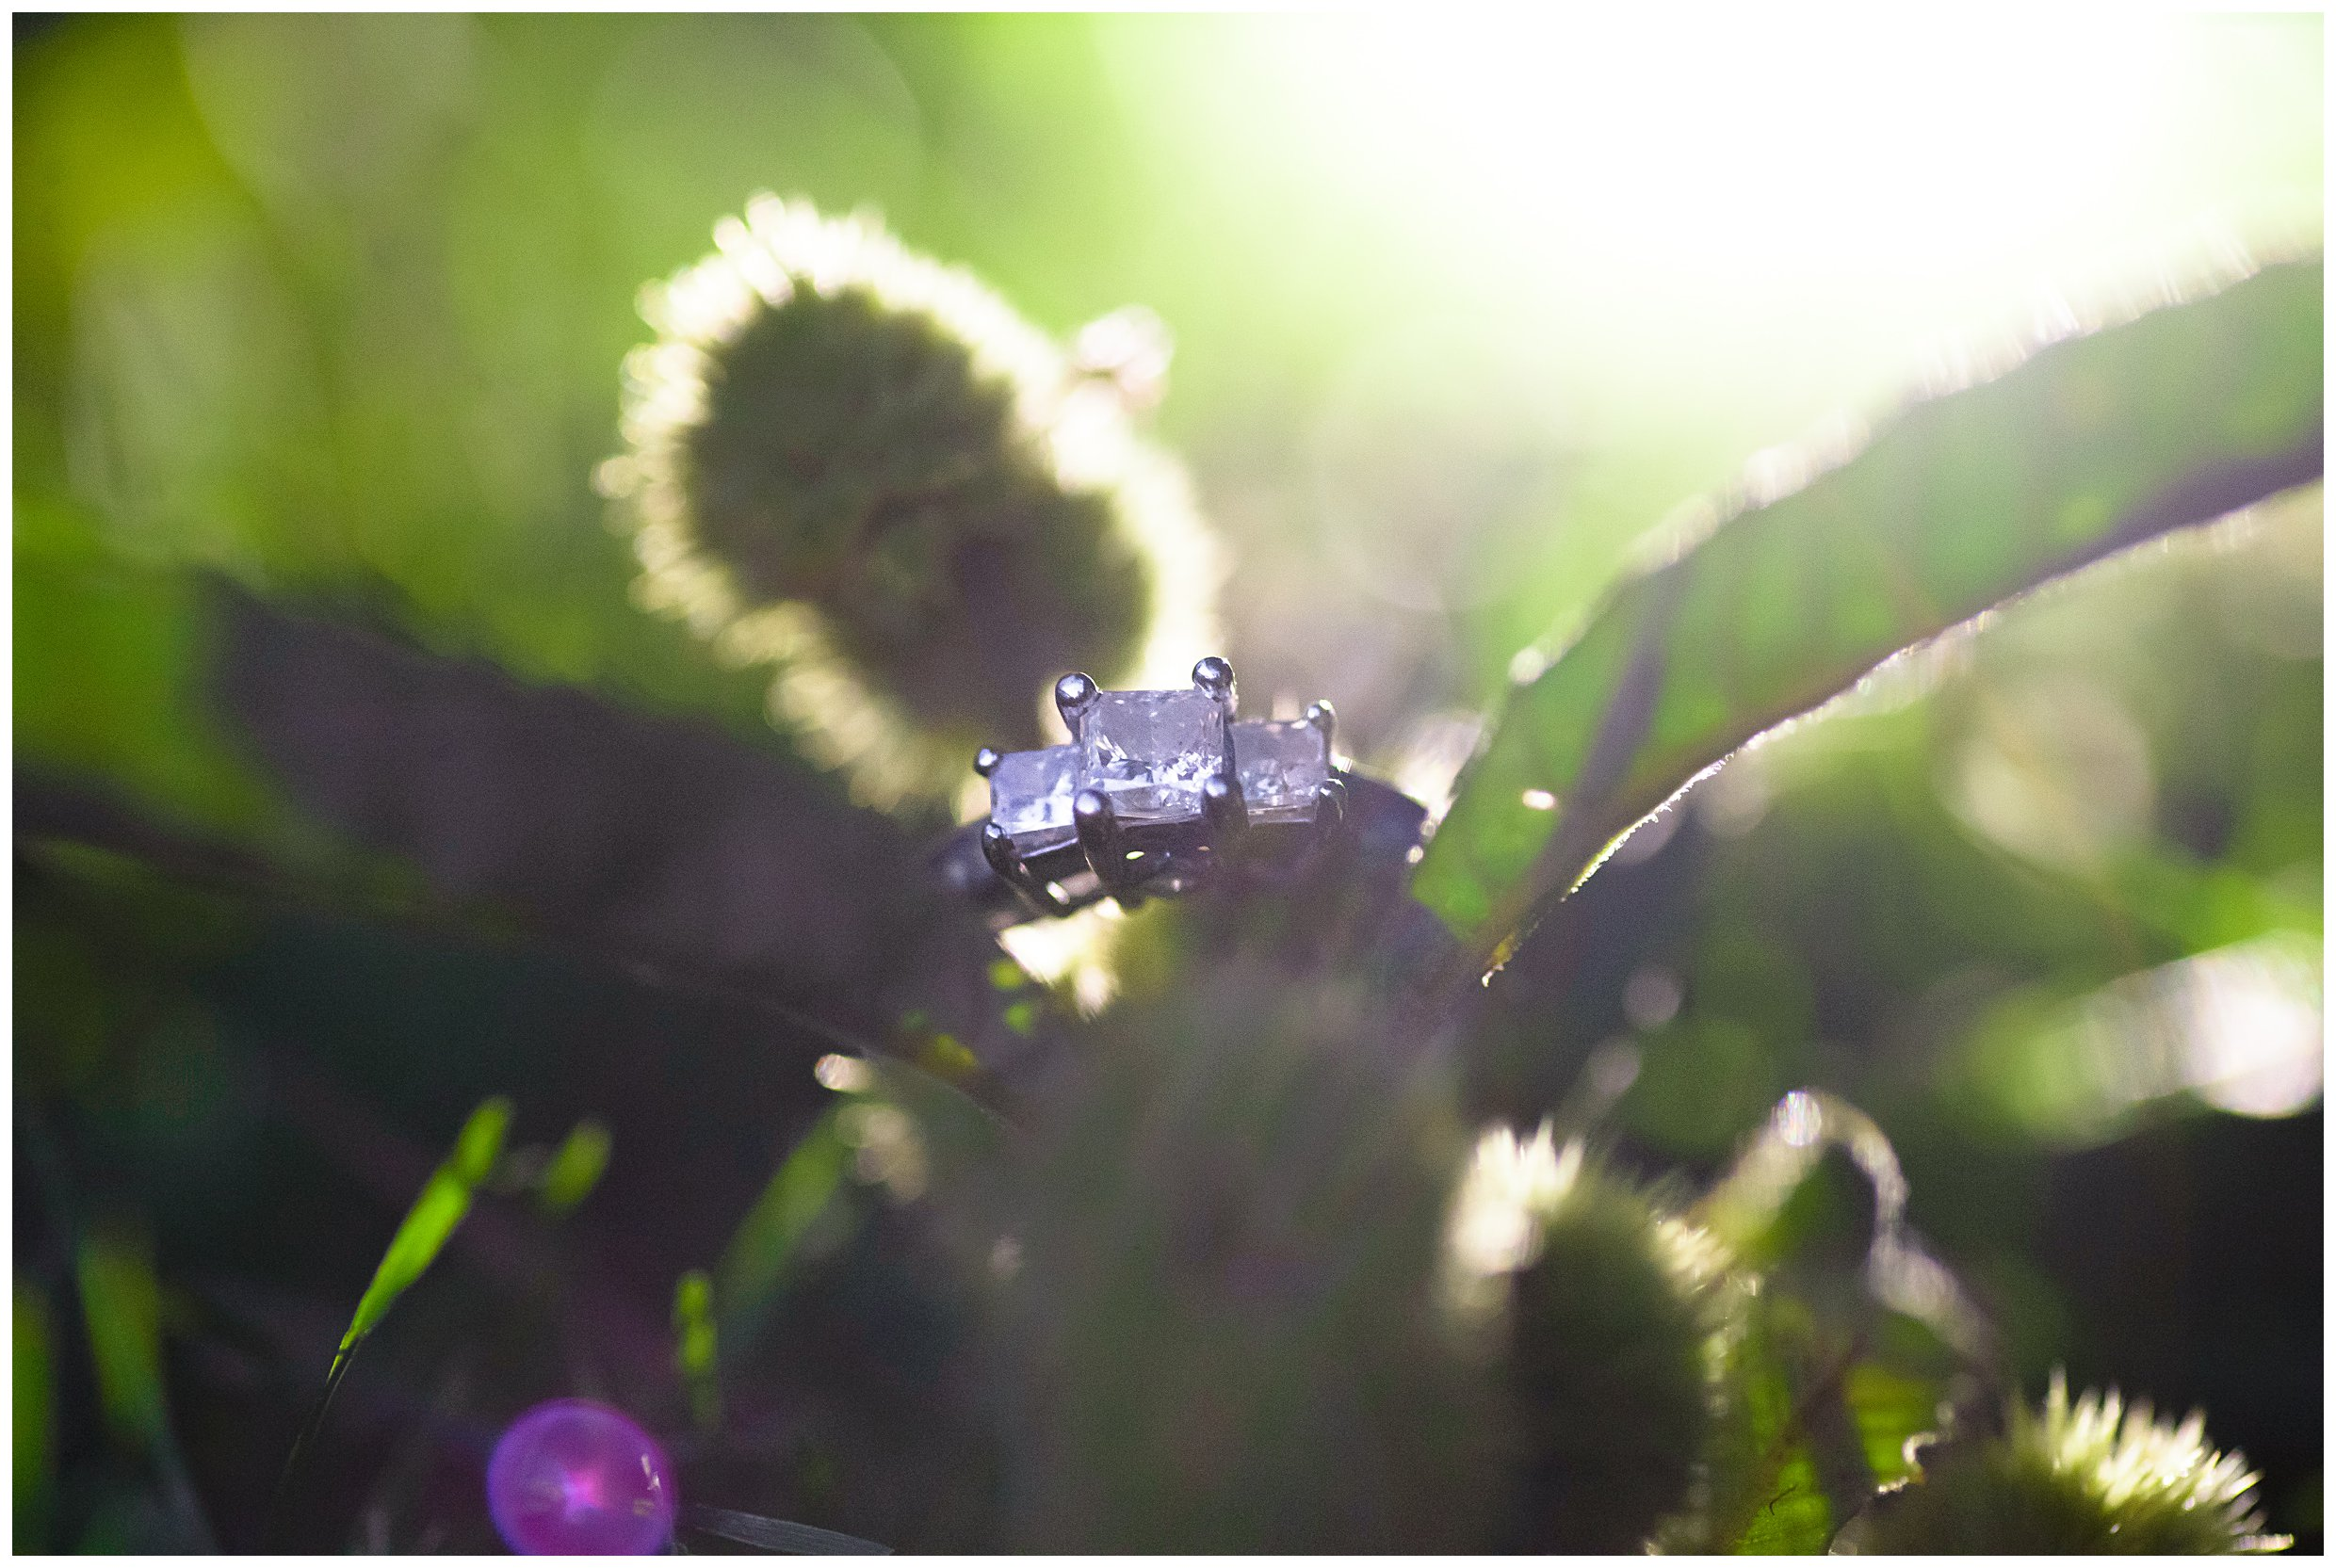 We were walking back to the car in the dark when I asked if I could try something a little different with their ring. I used my cell phone flash light and put it behind some pretty foliage I found along the path...loved the result!